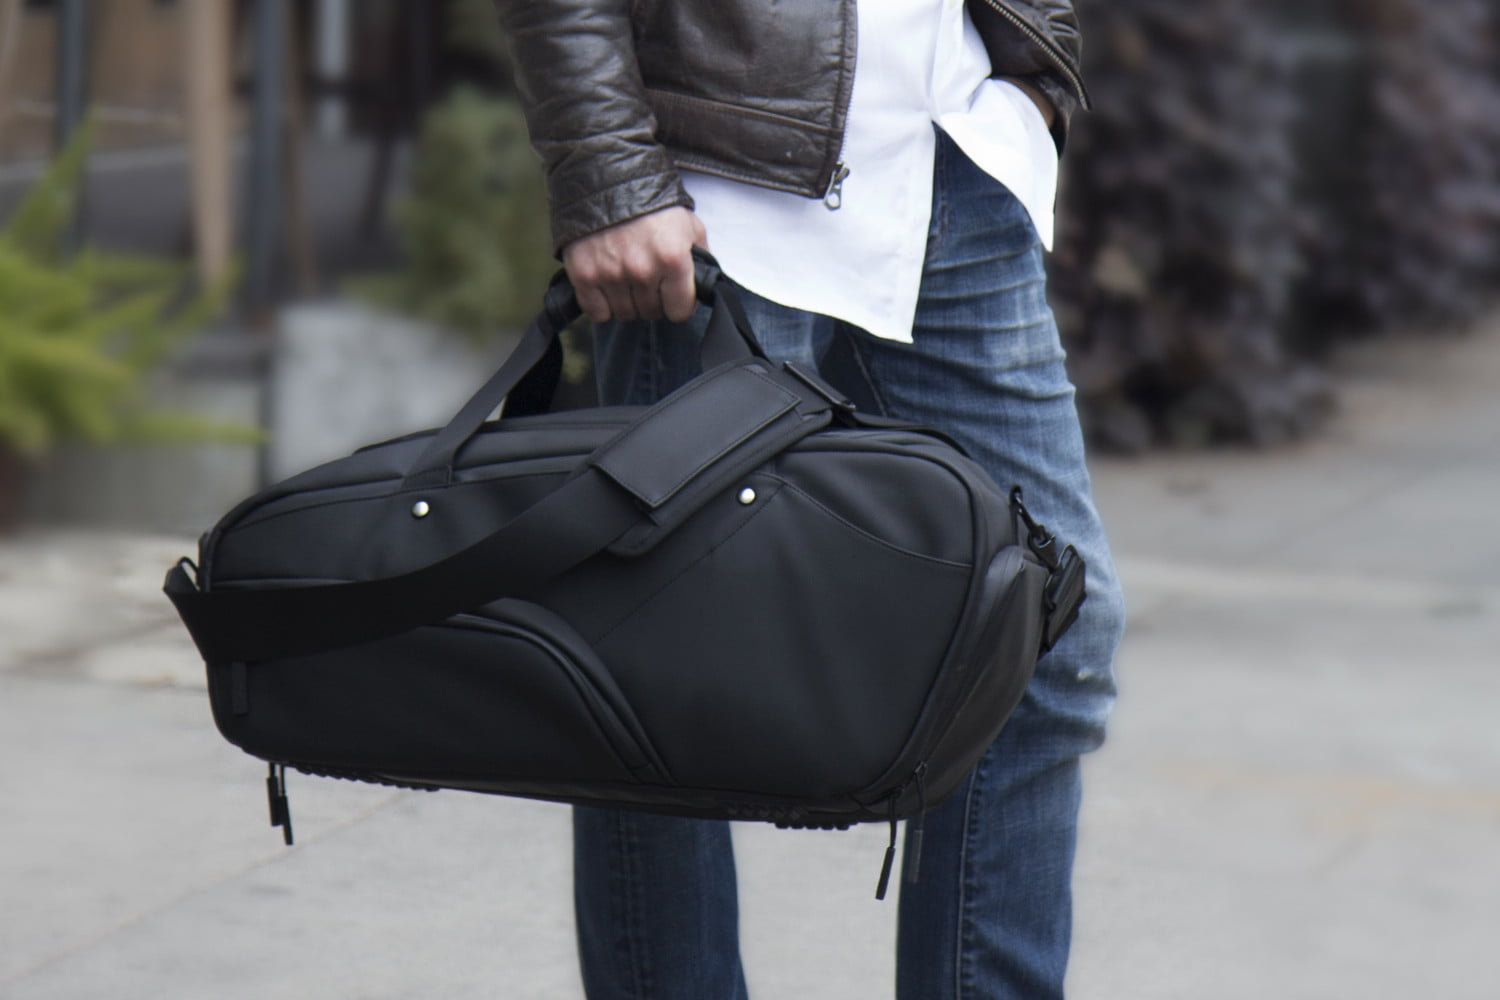 One look at the KP Duffle and it s clear it s like no gym bag that s come  before. The rigid construction gives it a shape and lines that s sports  car-like 2f46a9f717168